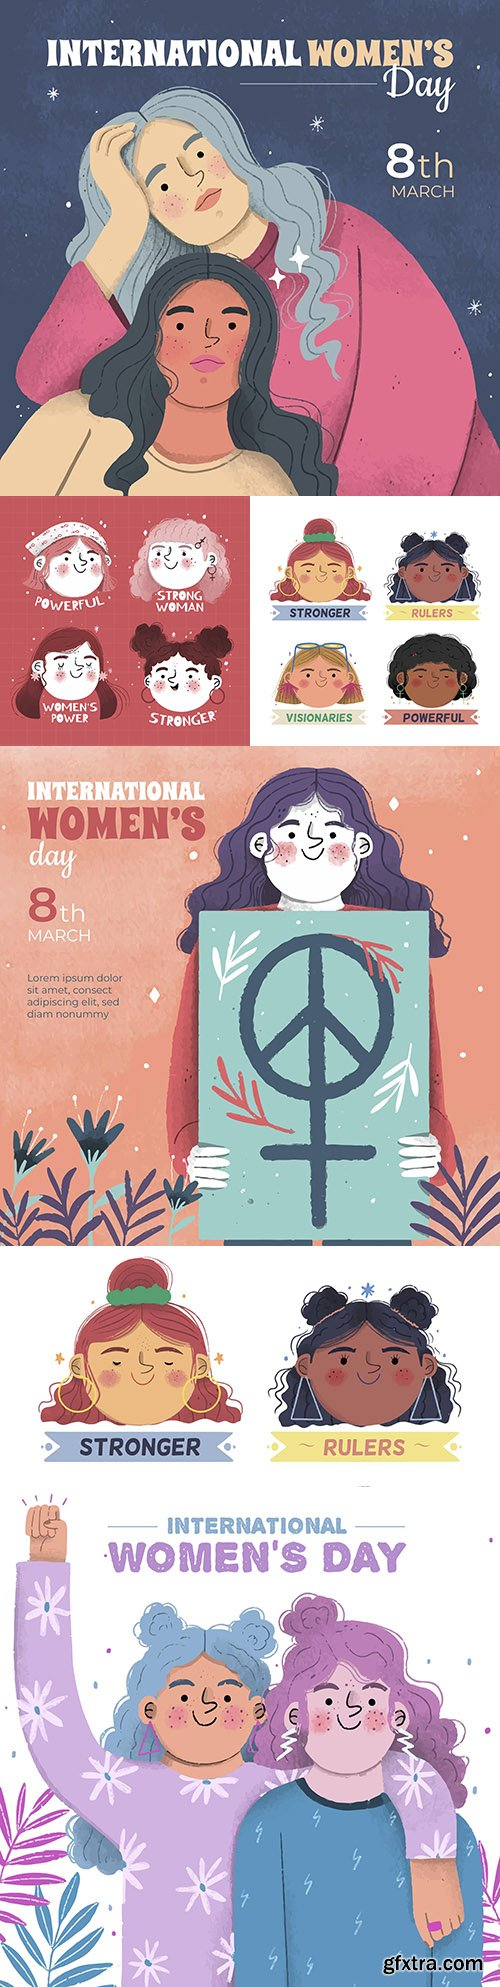 Happy Women's Day March 8 watercolor illustration 2